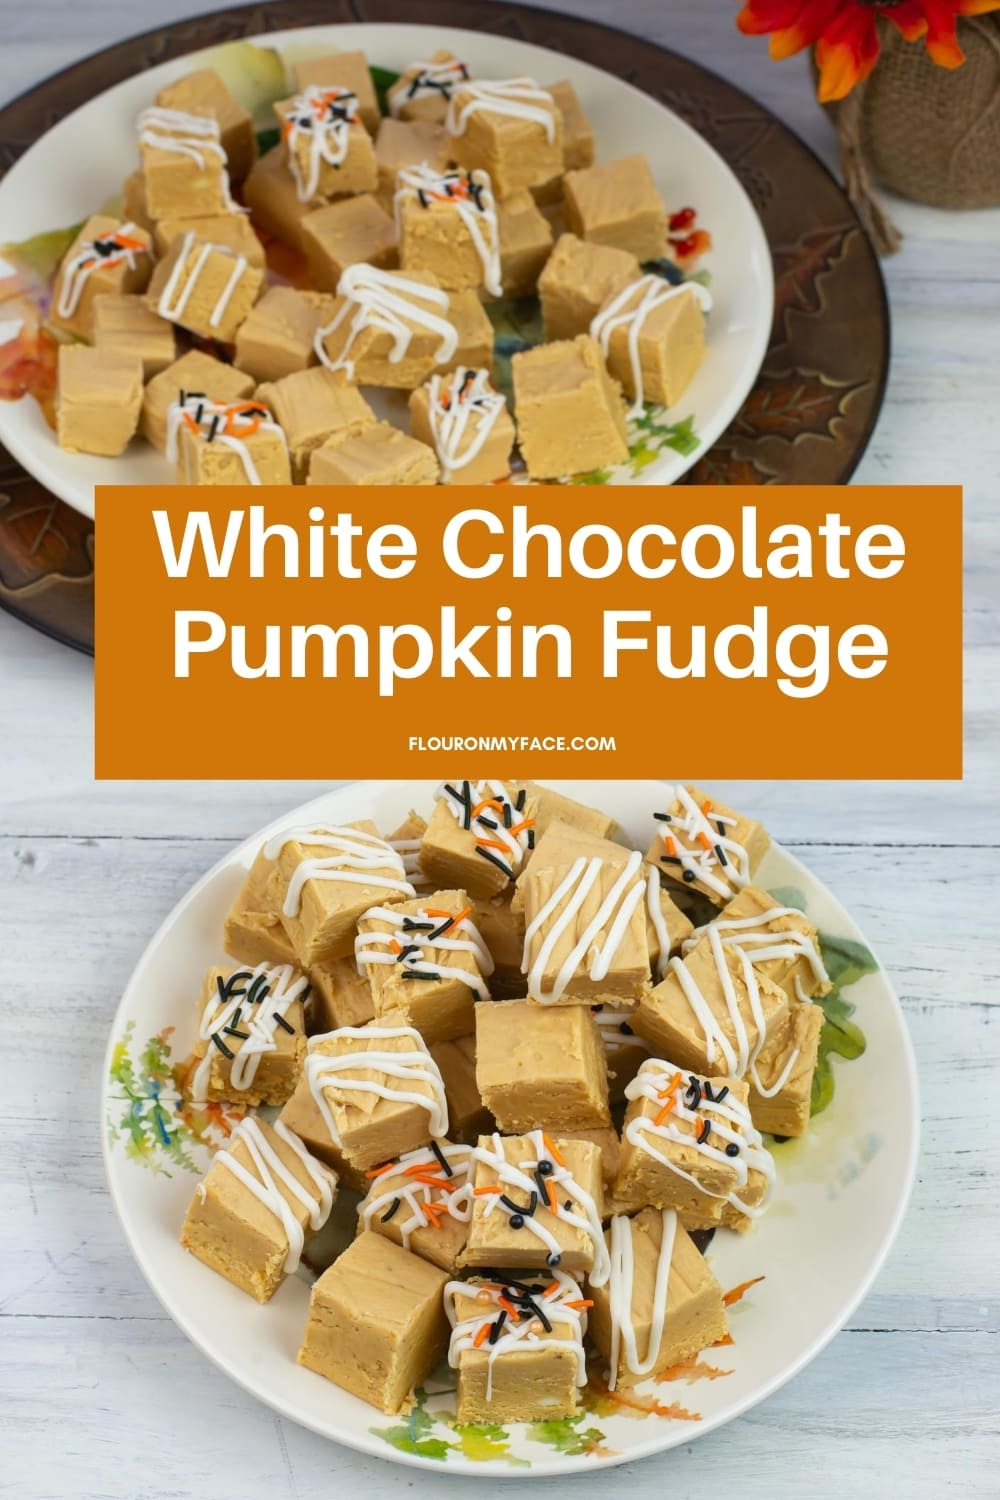 featured image of White Chocolate Pumpkin Fudge